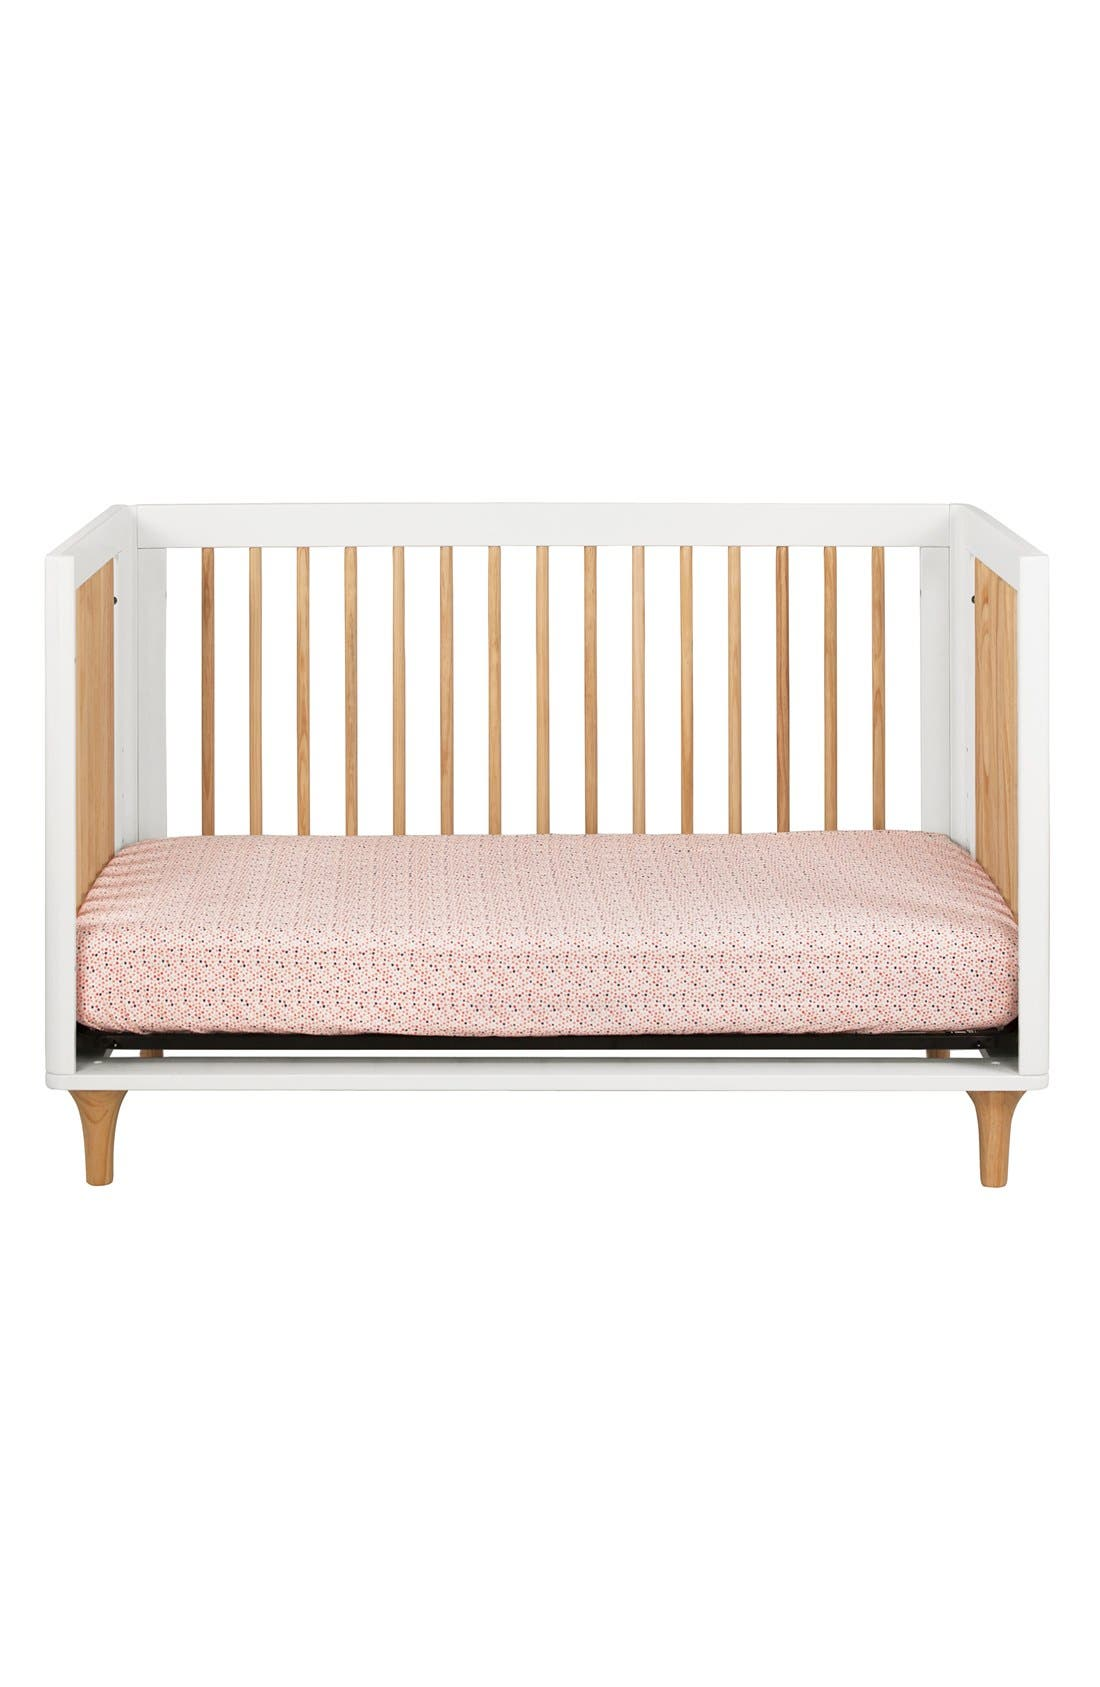 'Lolly' 3-in-1 Convertible Crib,                             Alternate thumbnail 5, color,                             250